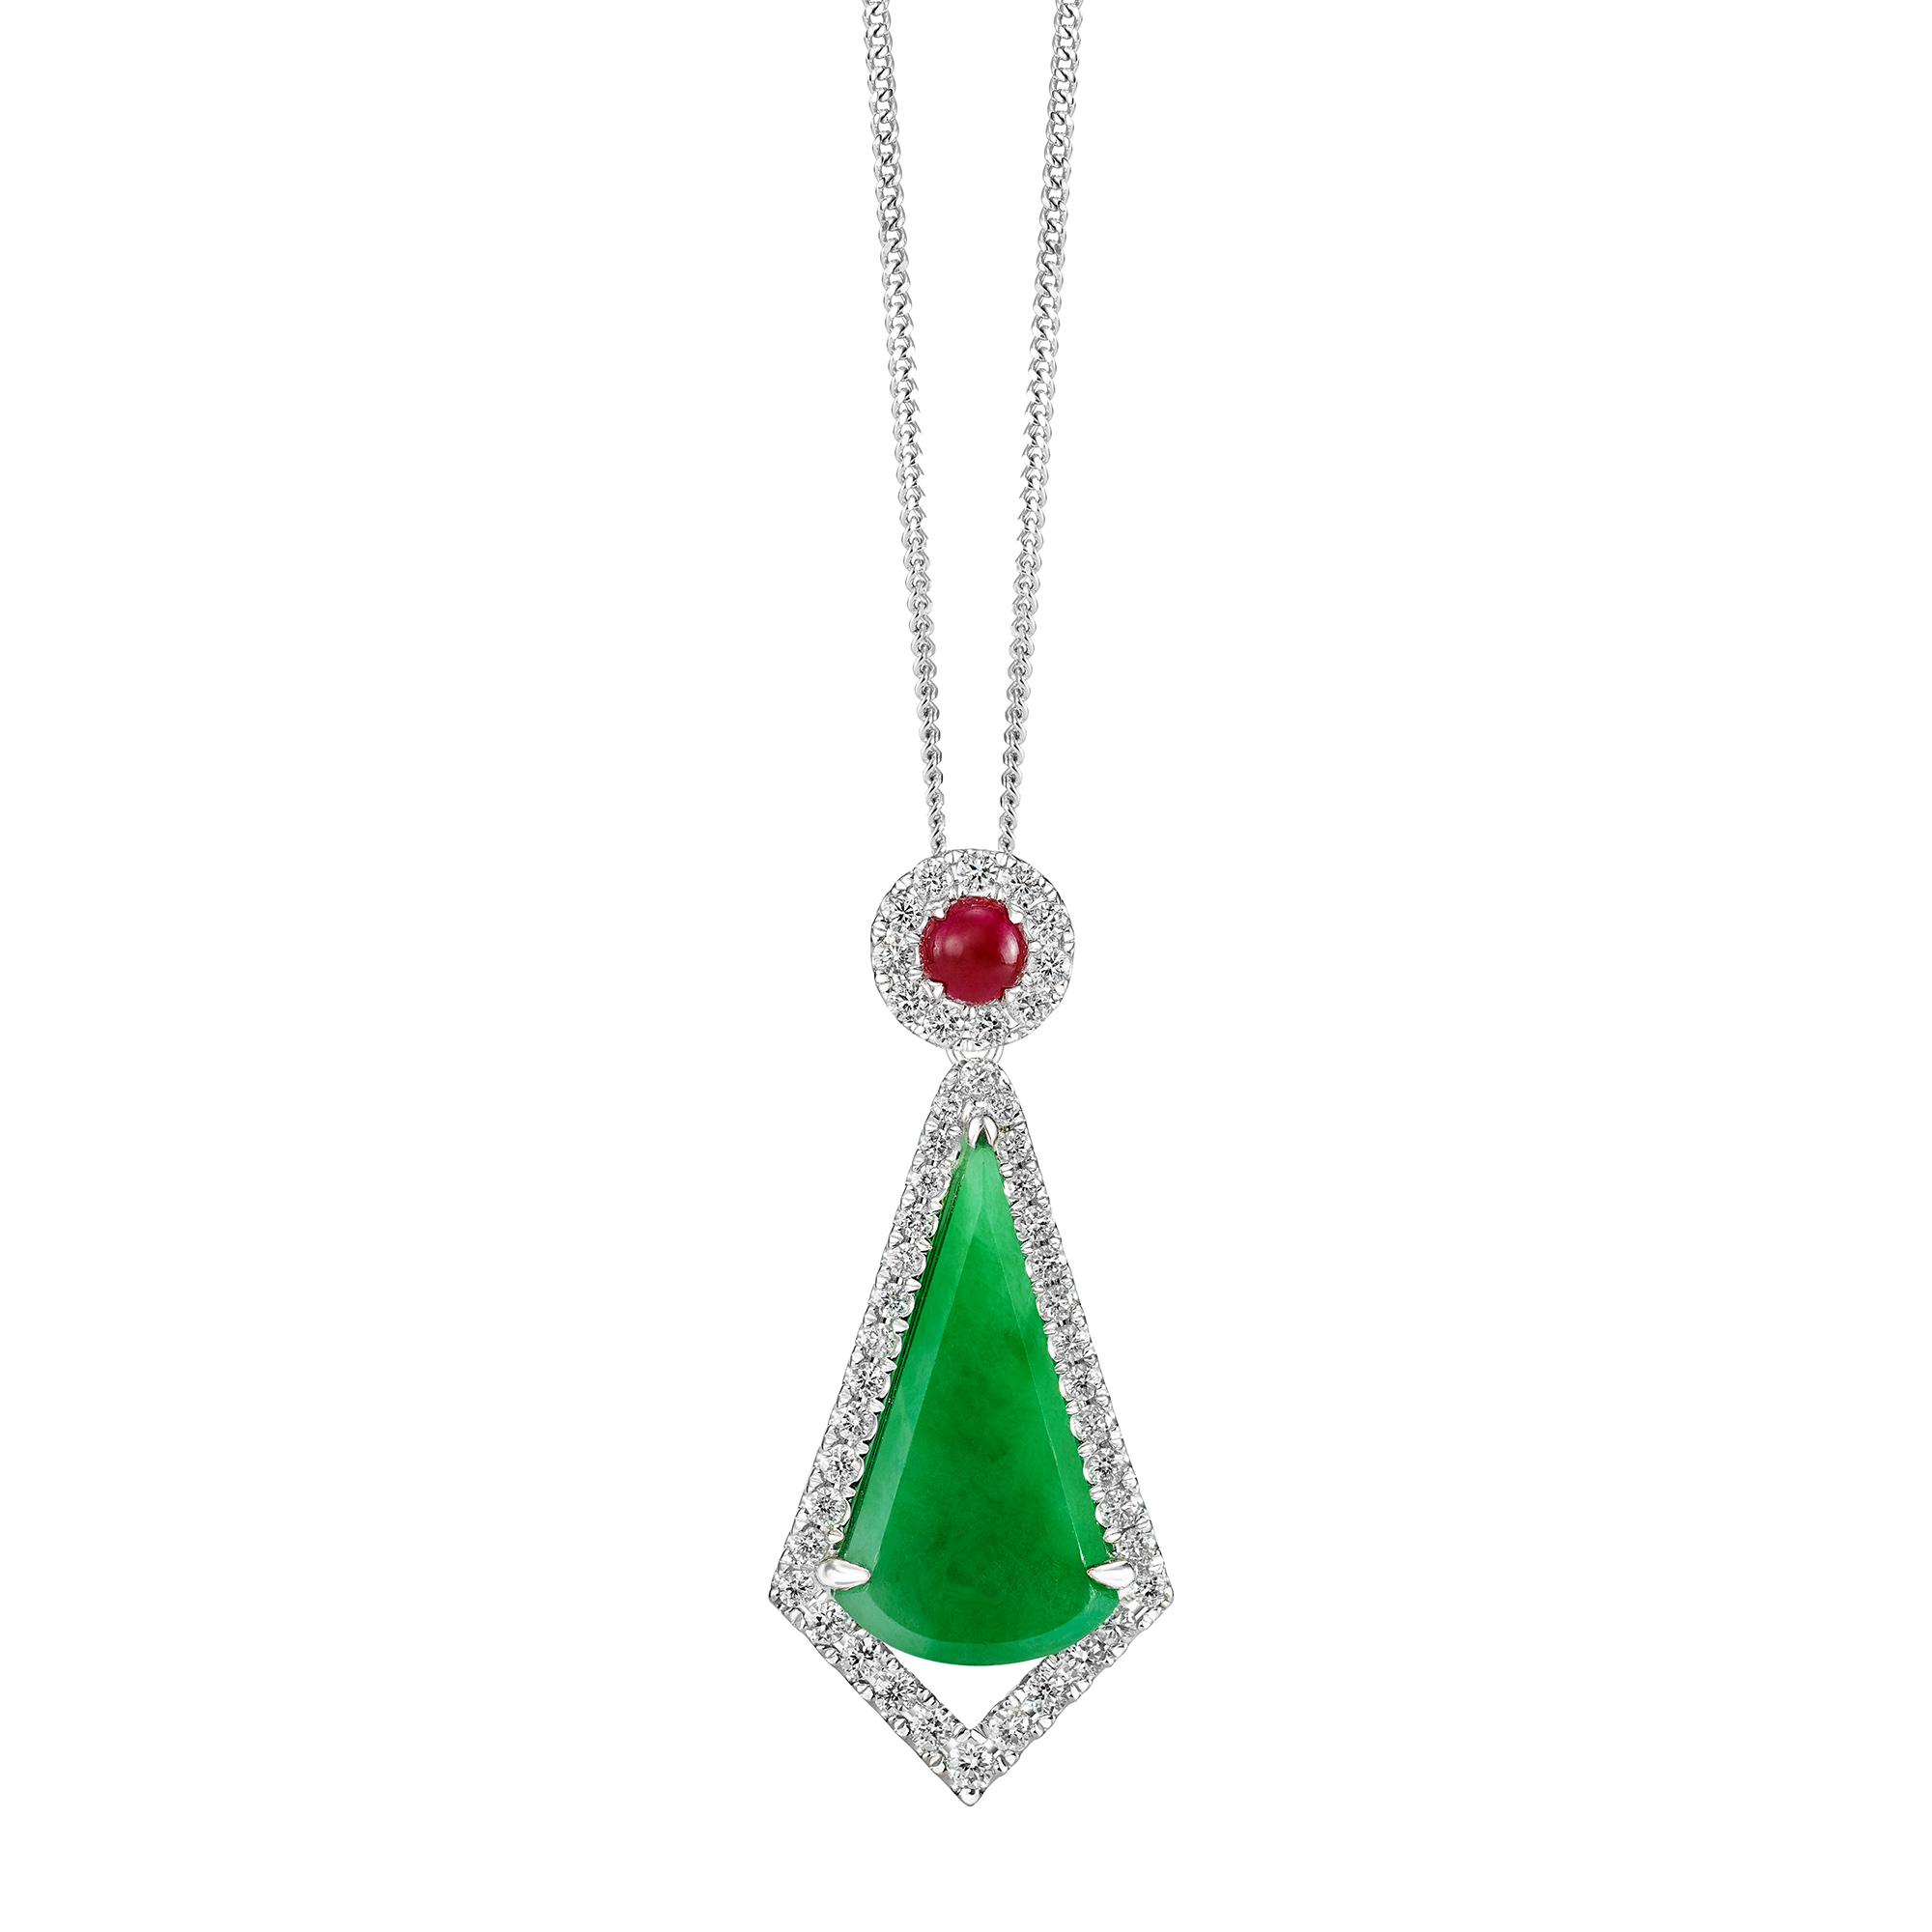 Luscious Jade Fan Necklace with Cabochon Ruby